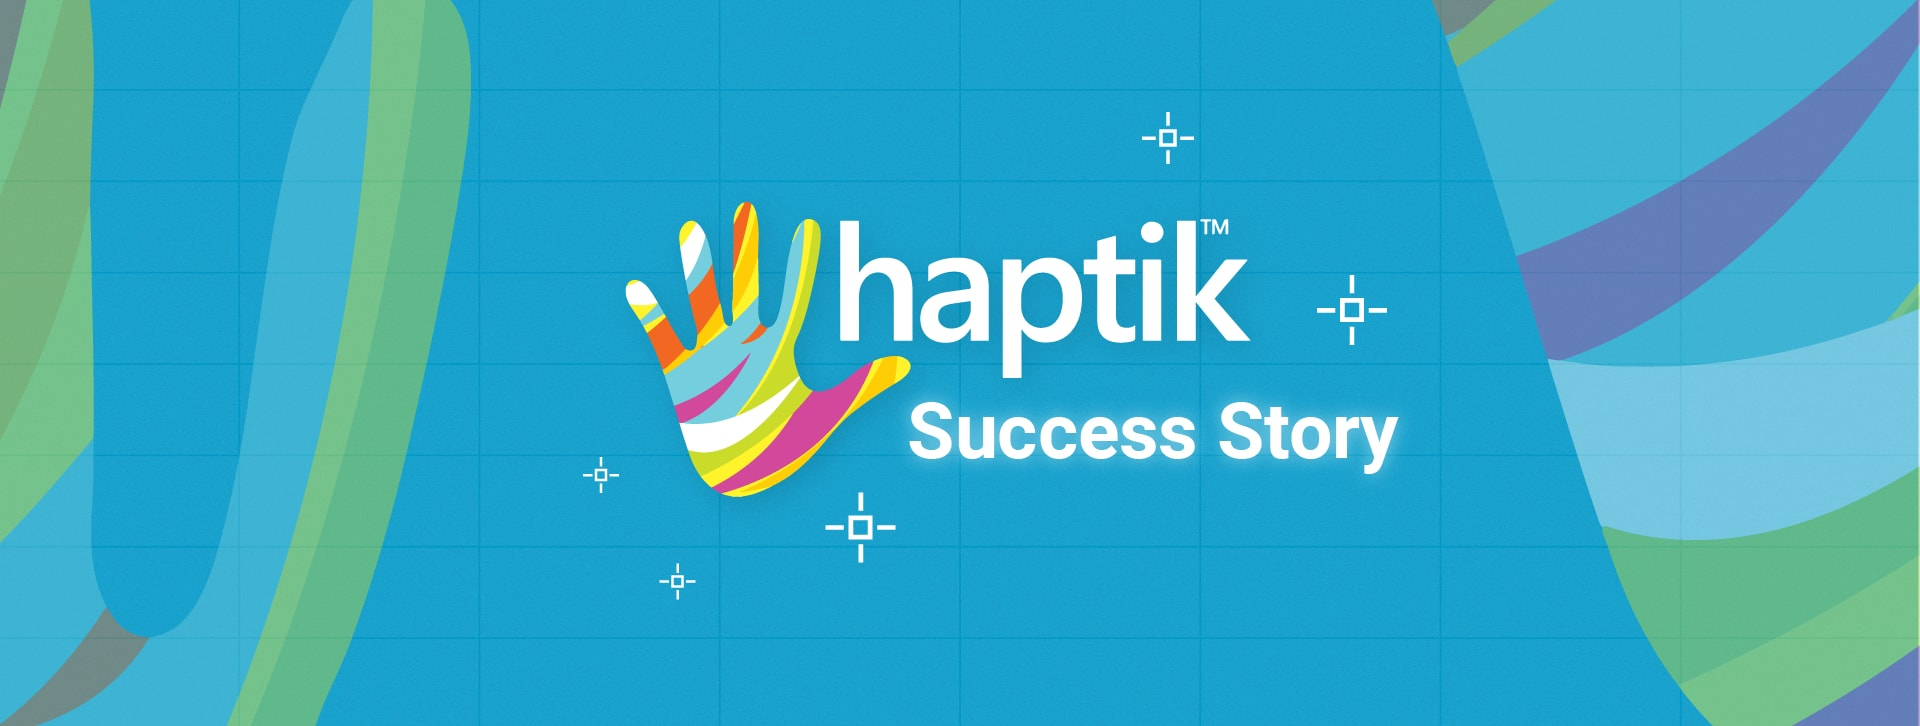 How to reduce cloud costs: Haptik reduces costs by 85%